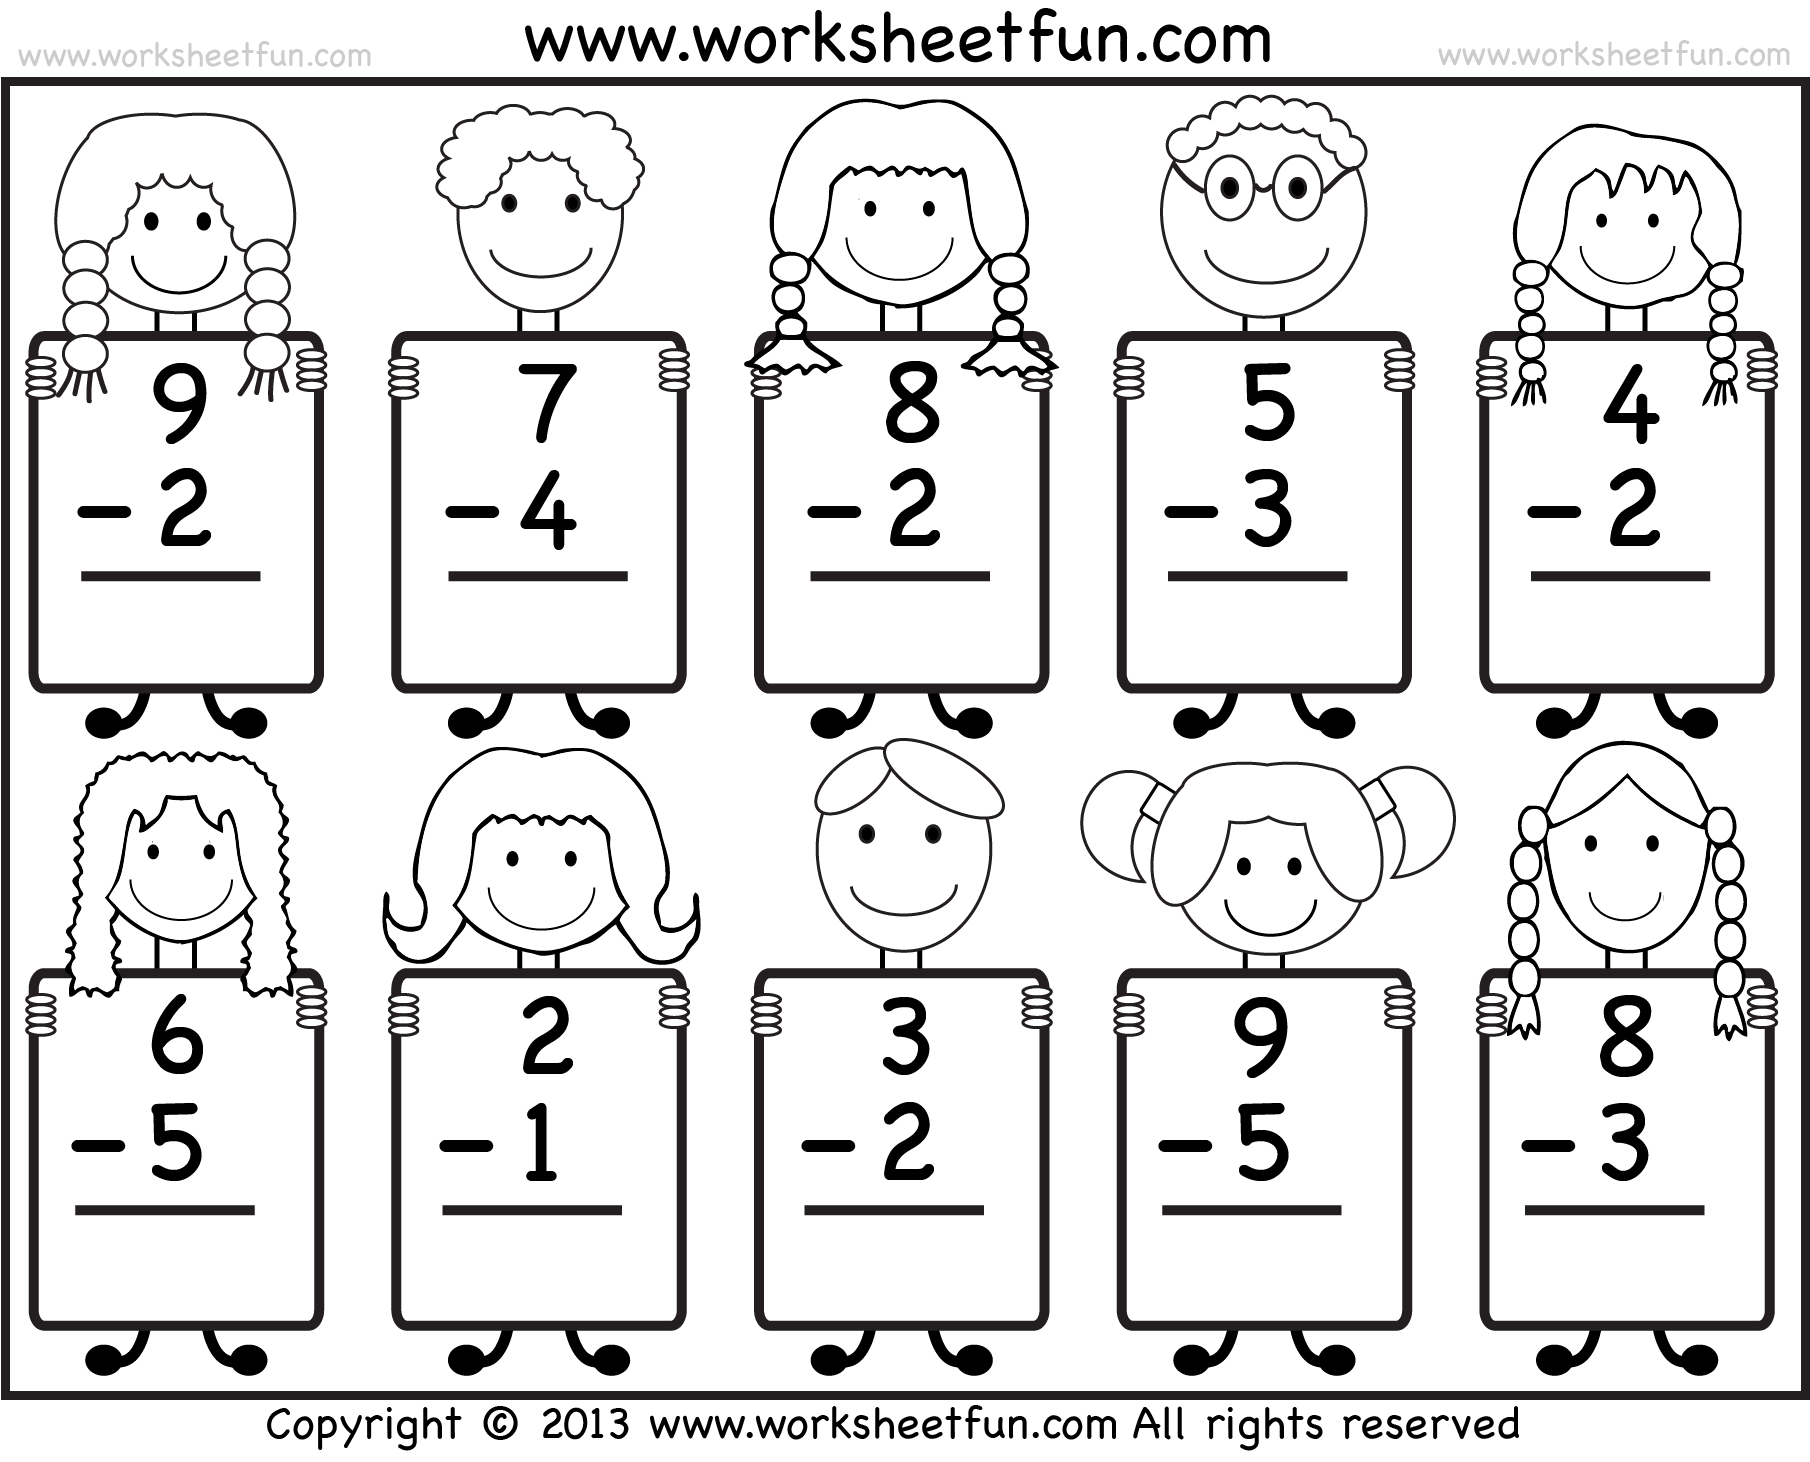 beginner subtraction   kindergarten subtraction worksheets  free  kindergarten addition worksheets  kindergarten subtraction worksheets   beginner subtraction